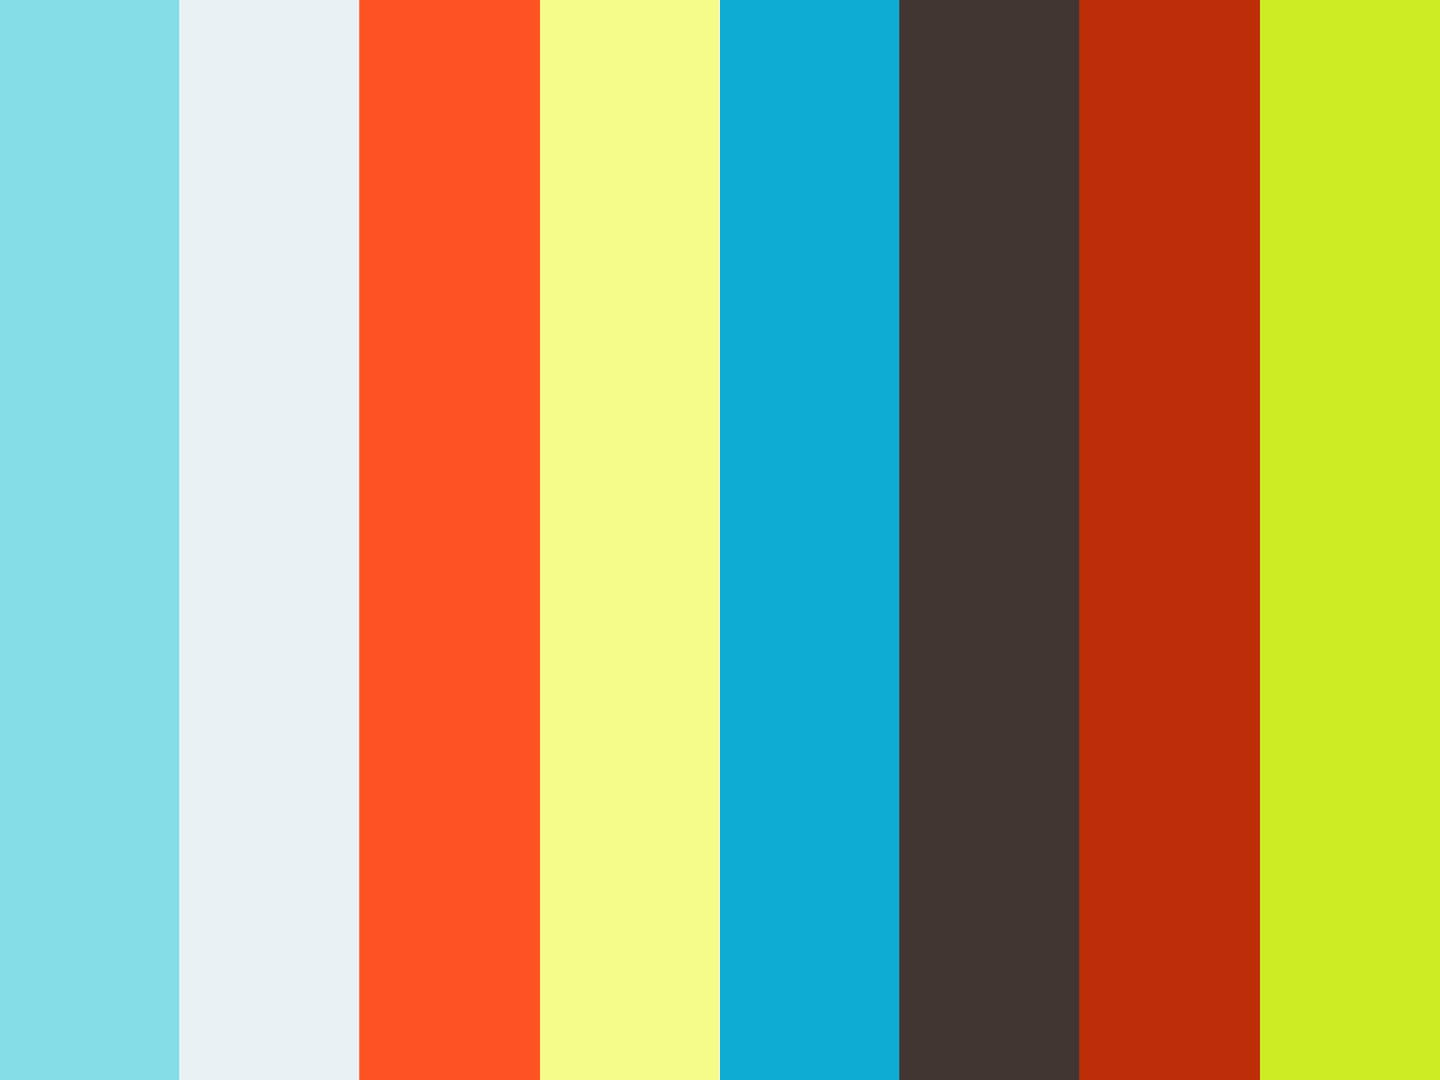 Virtual families 2 our dream house on vimeo for Virtual families 2 decoration